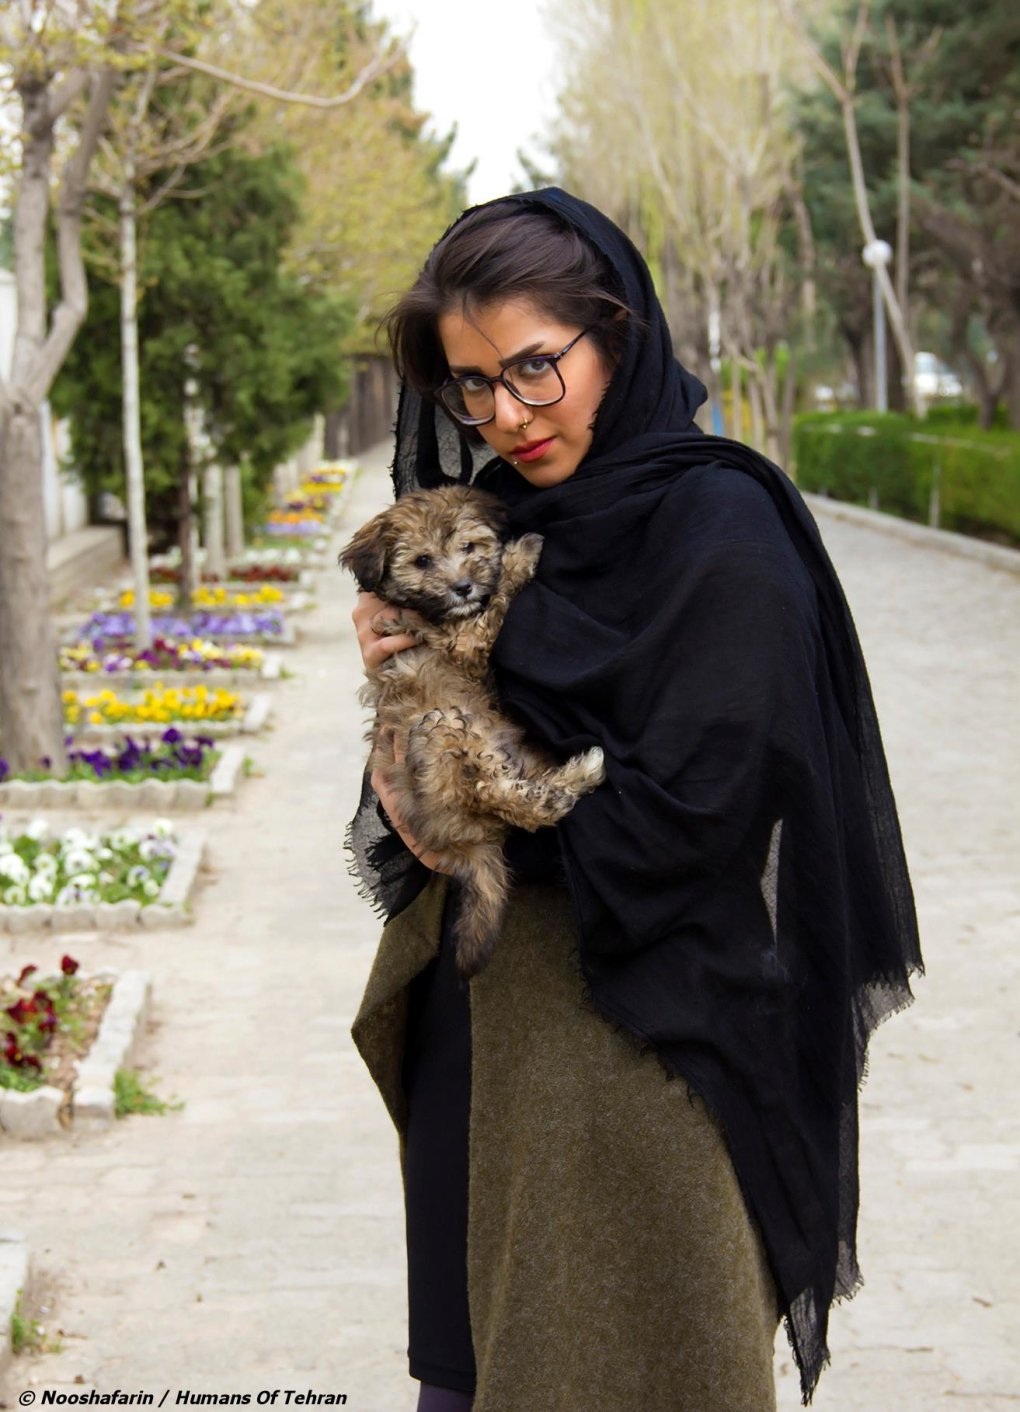 oamtssz - rarely seen photos of my great city tehran,iran and its' beautiful people